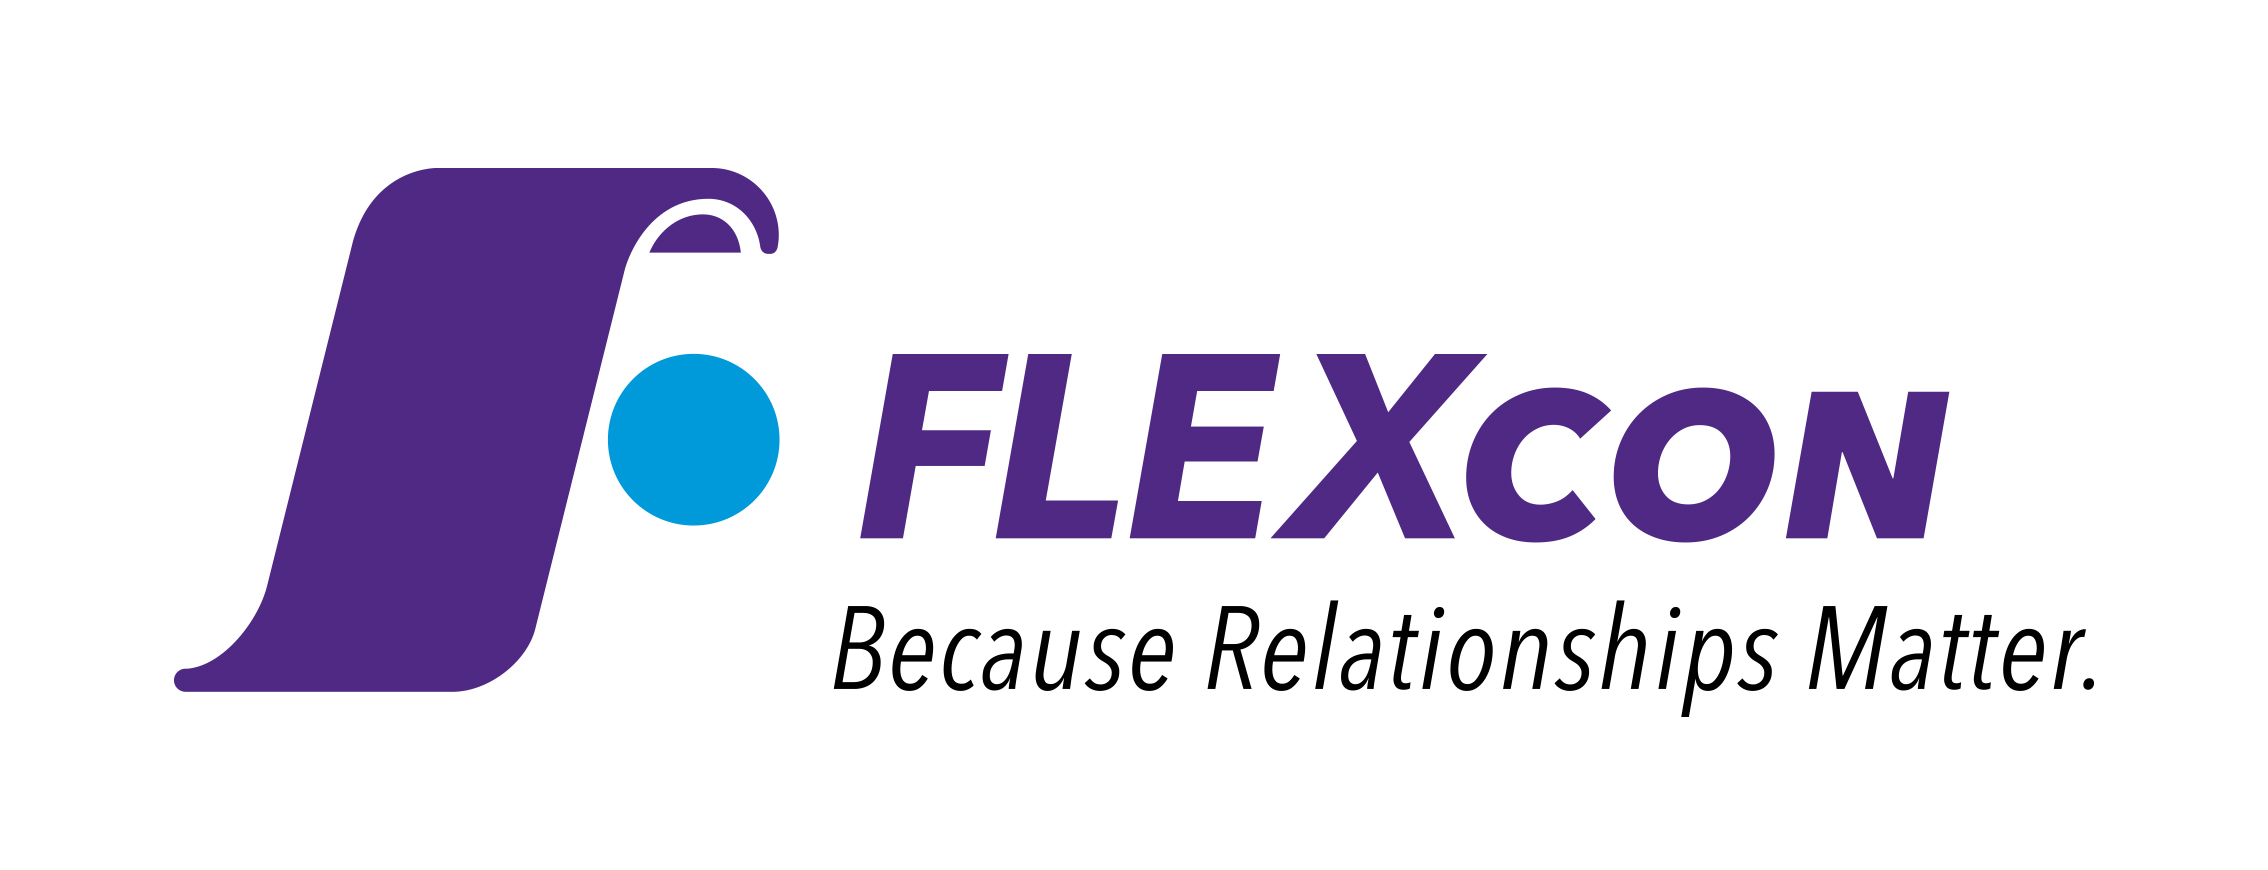 FLEXcon Company, Inc. in Spencer, MA. Coated & laminated films & adhesives for printers & fabricators, engineers & designers & developing products for existing & emerging markets.